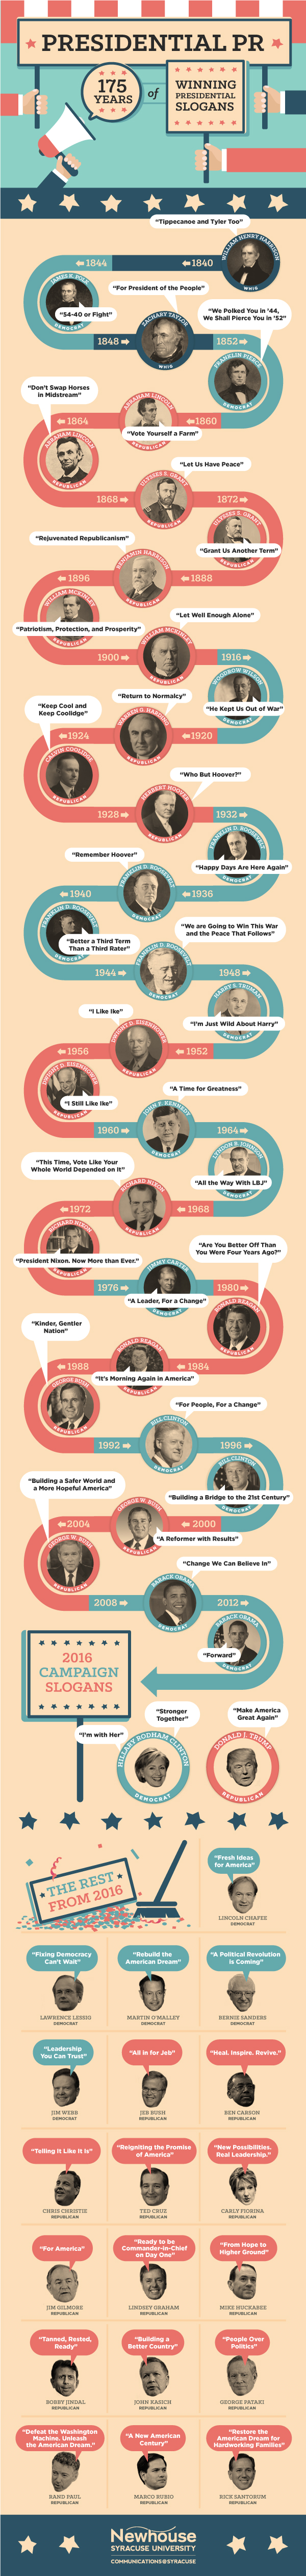 Infographic sharing 175 Years of winning presidential slogans.